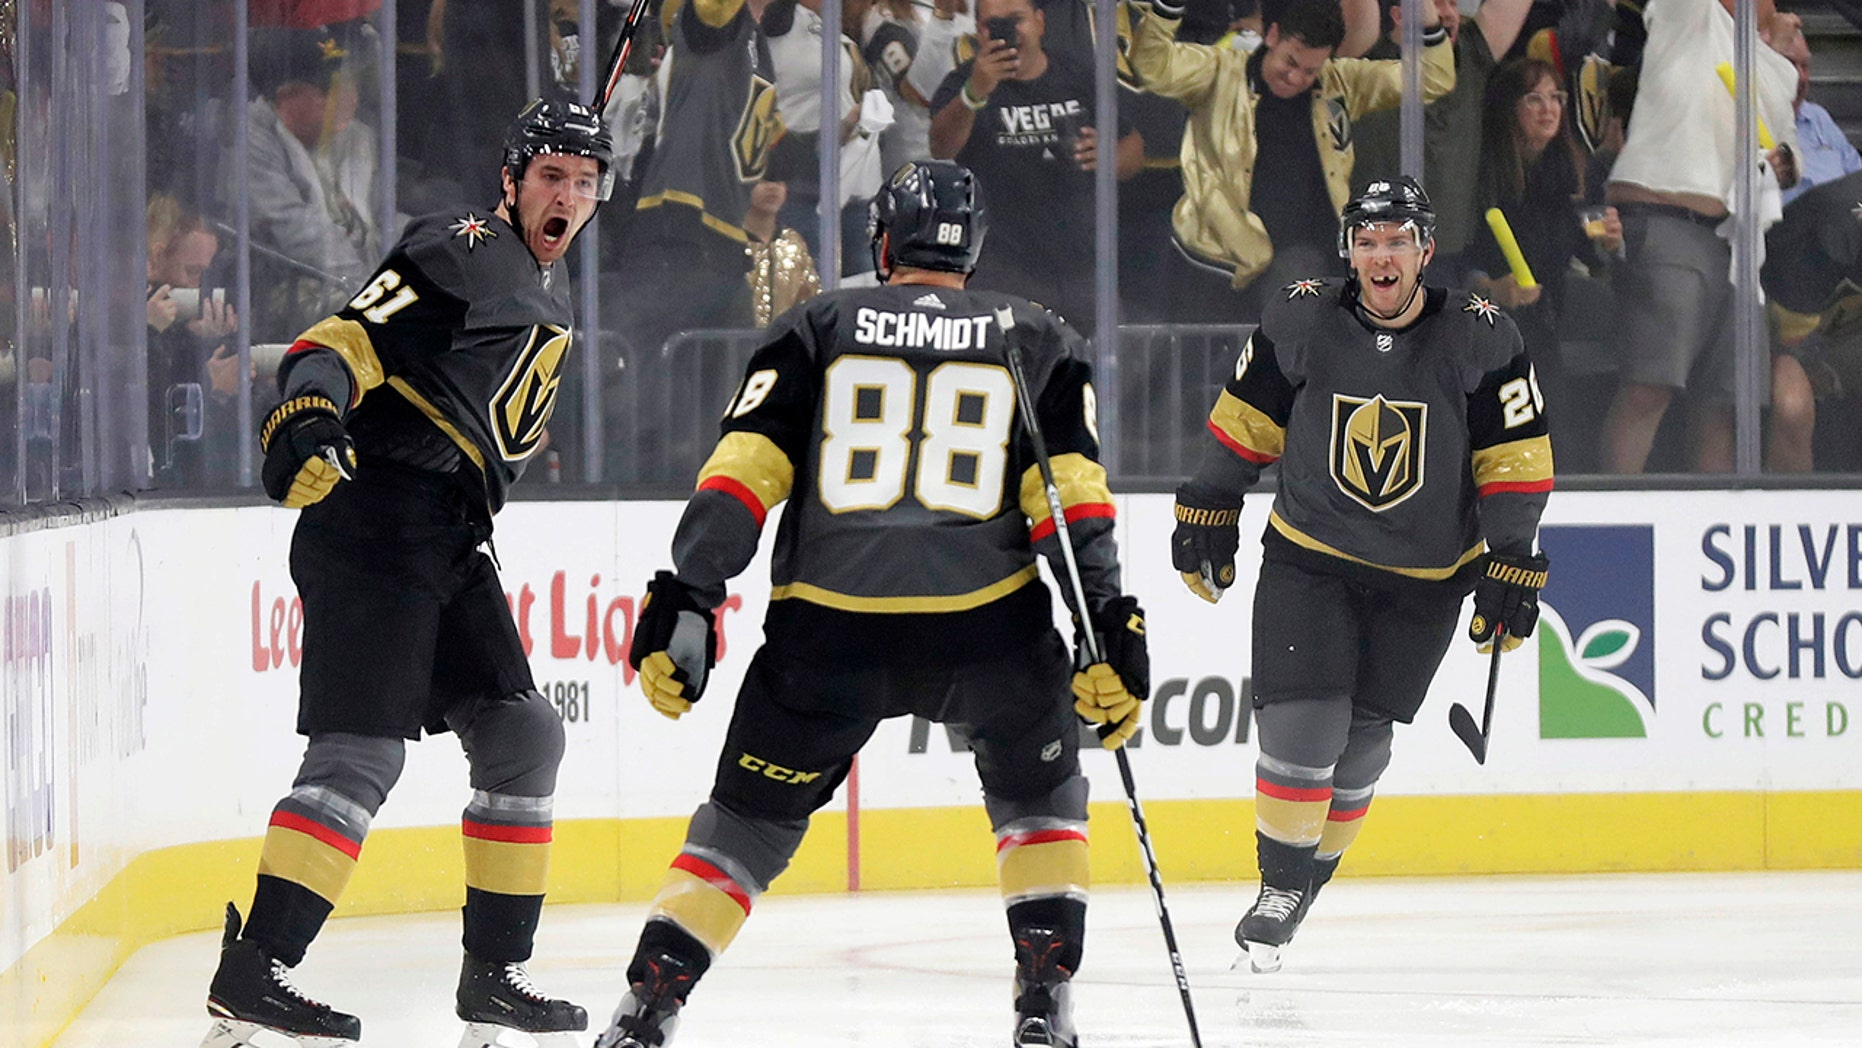 Vegas Golden Knights right wing Mark Stone, left, celebrates after scoring against the San Jose Sharks during the first period of Game 3 of an NHL first-round hockey playoff series game, Sunday, April 14, 2019, in Las Vegas. (AP Photo/Isaac Brekken)